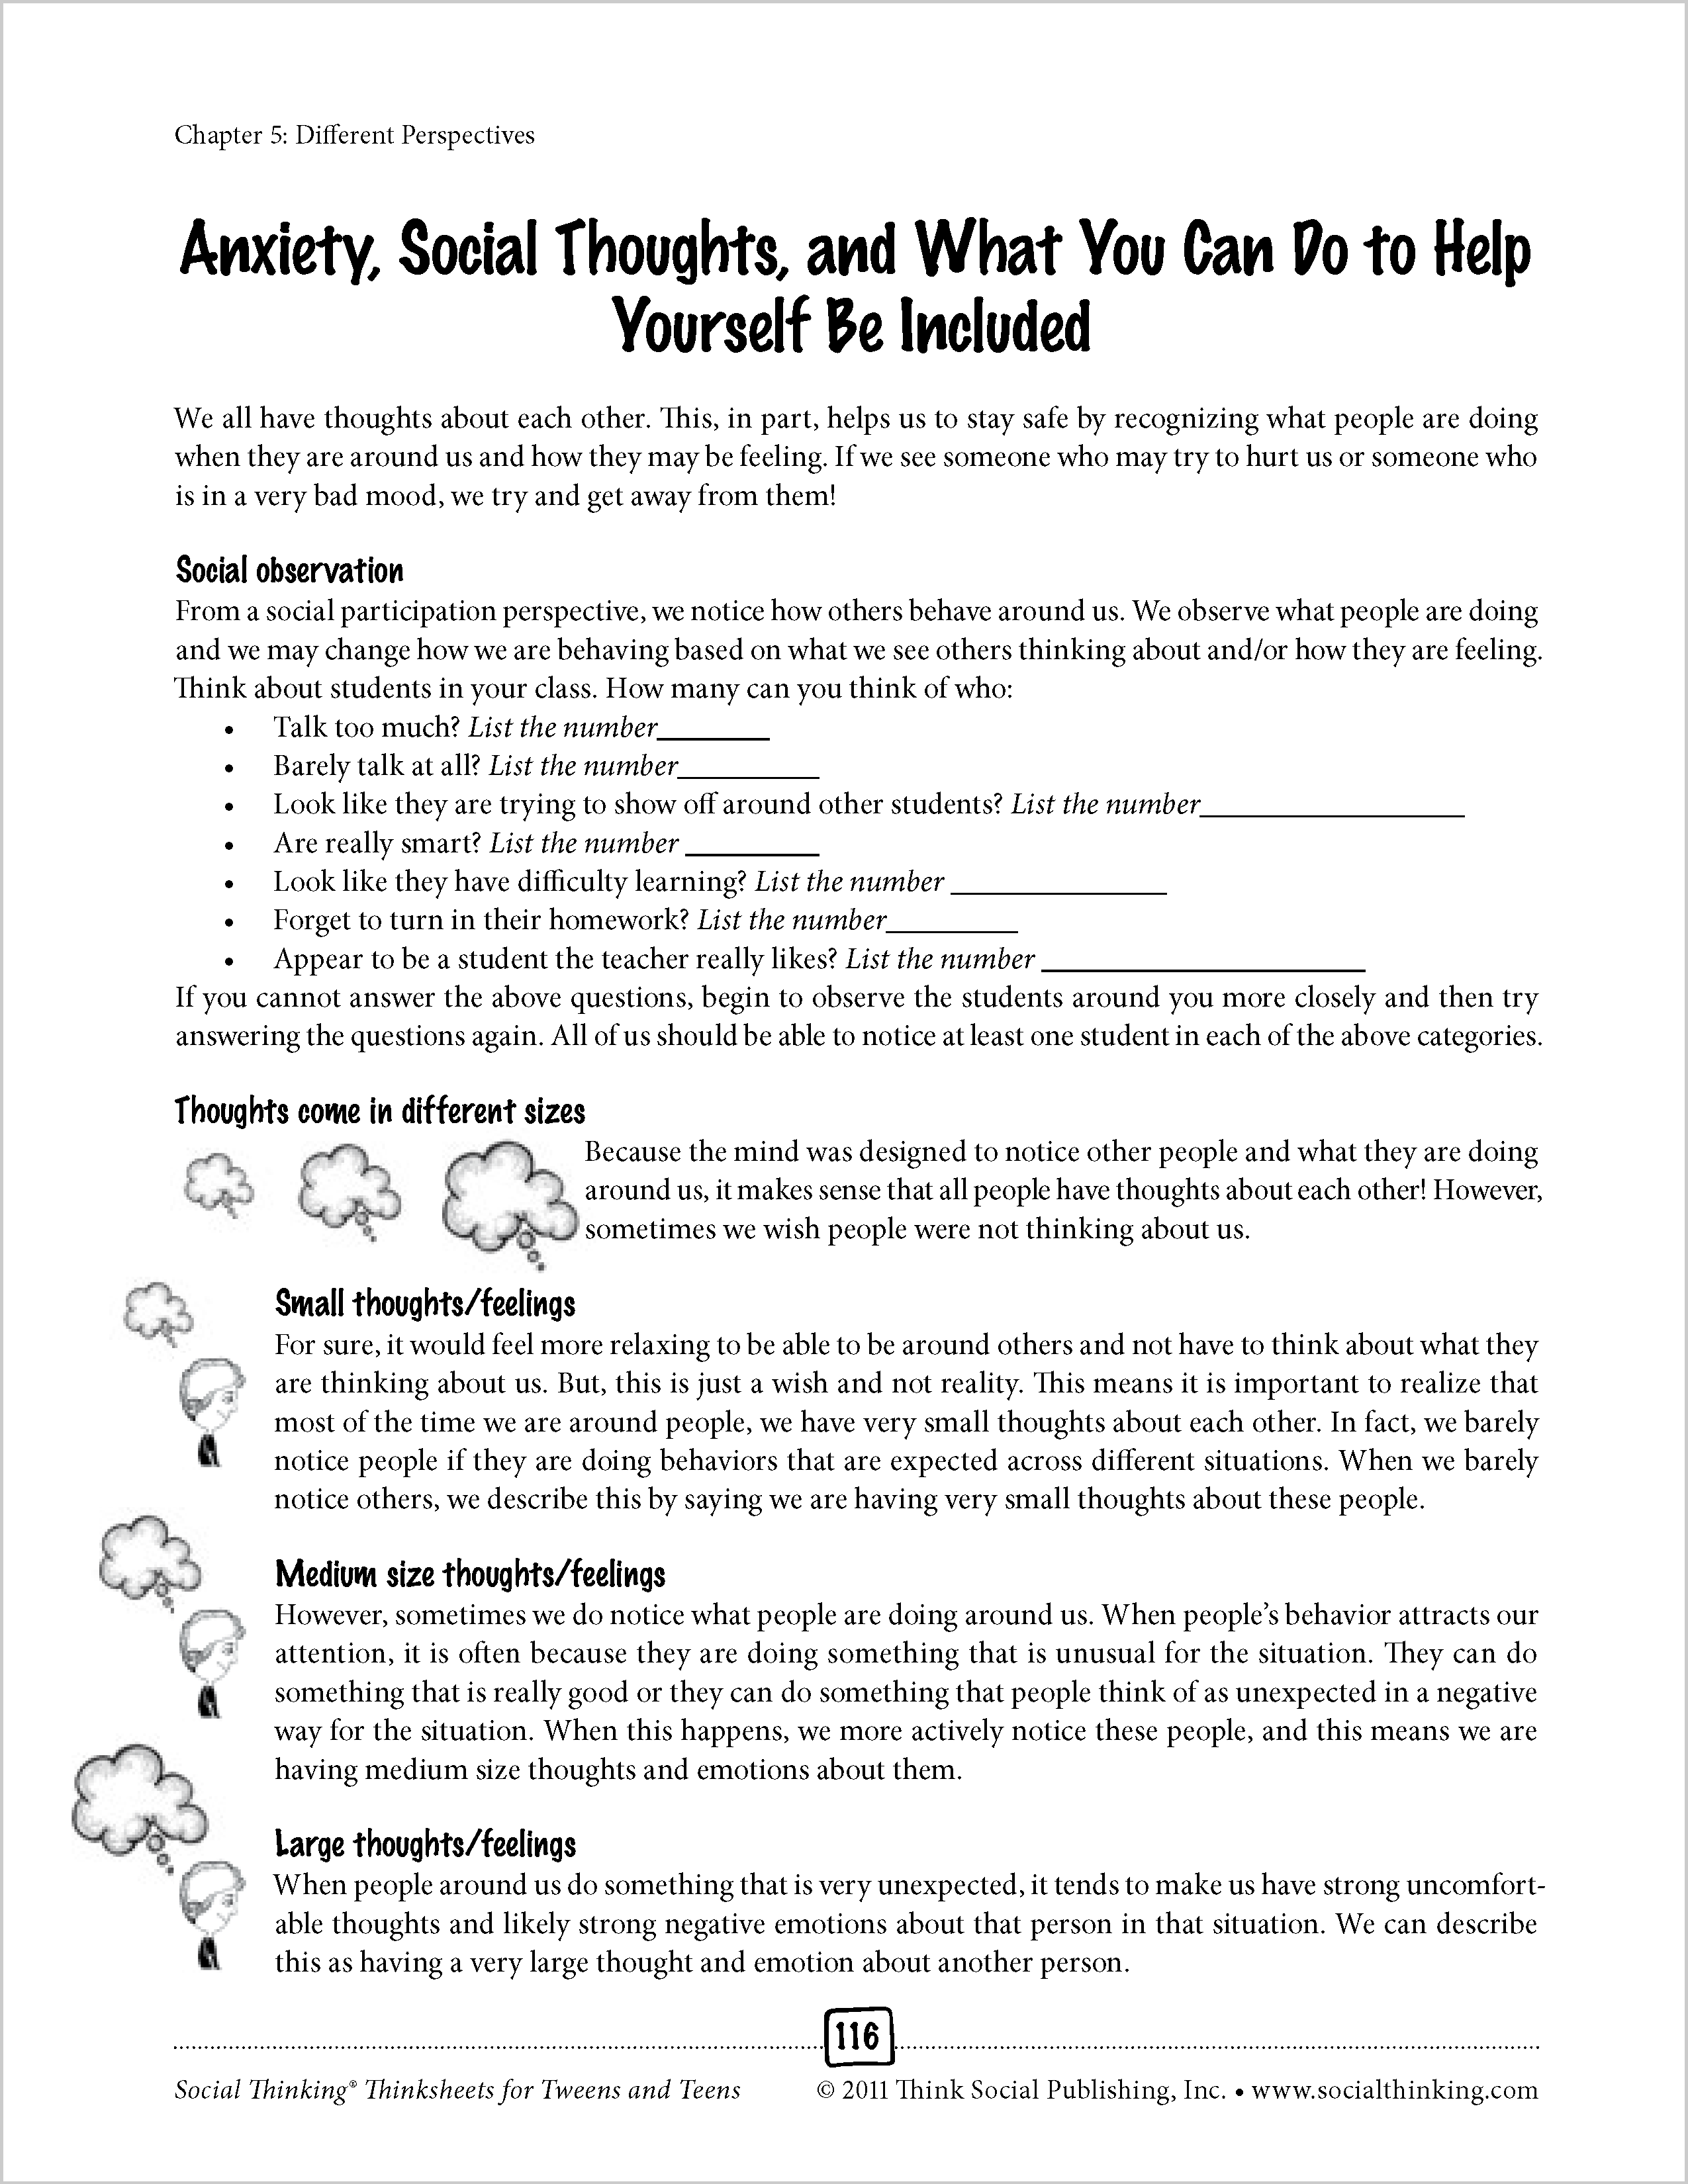 Worksheets Social Thinking Worksheets social thinking worksheets free library download and from the book for teaching related